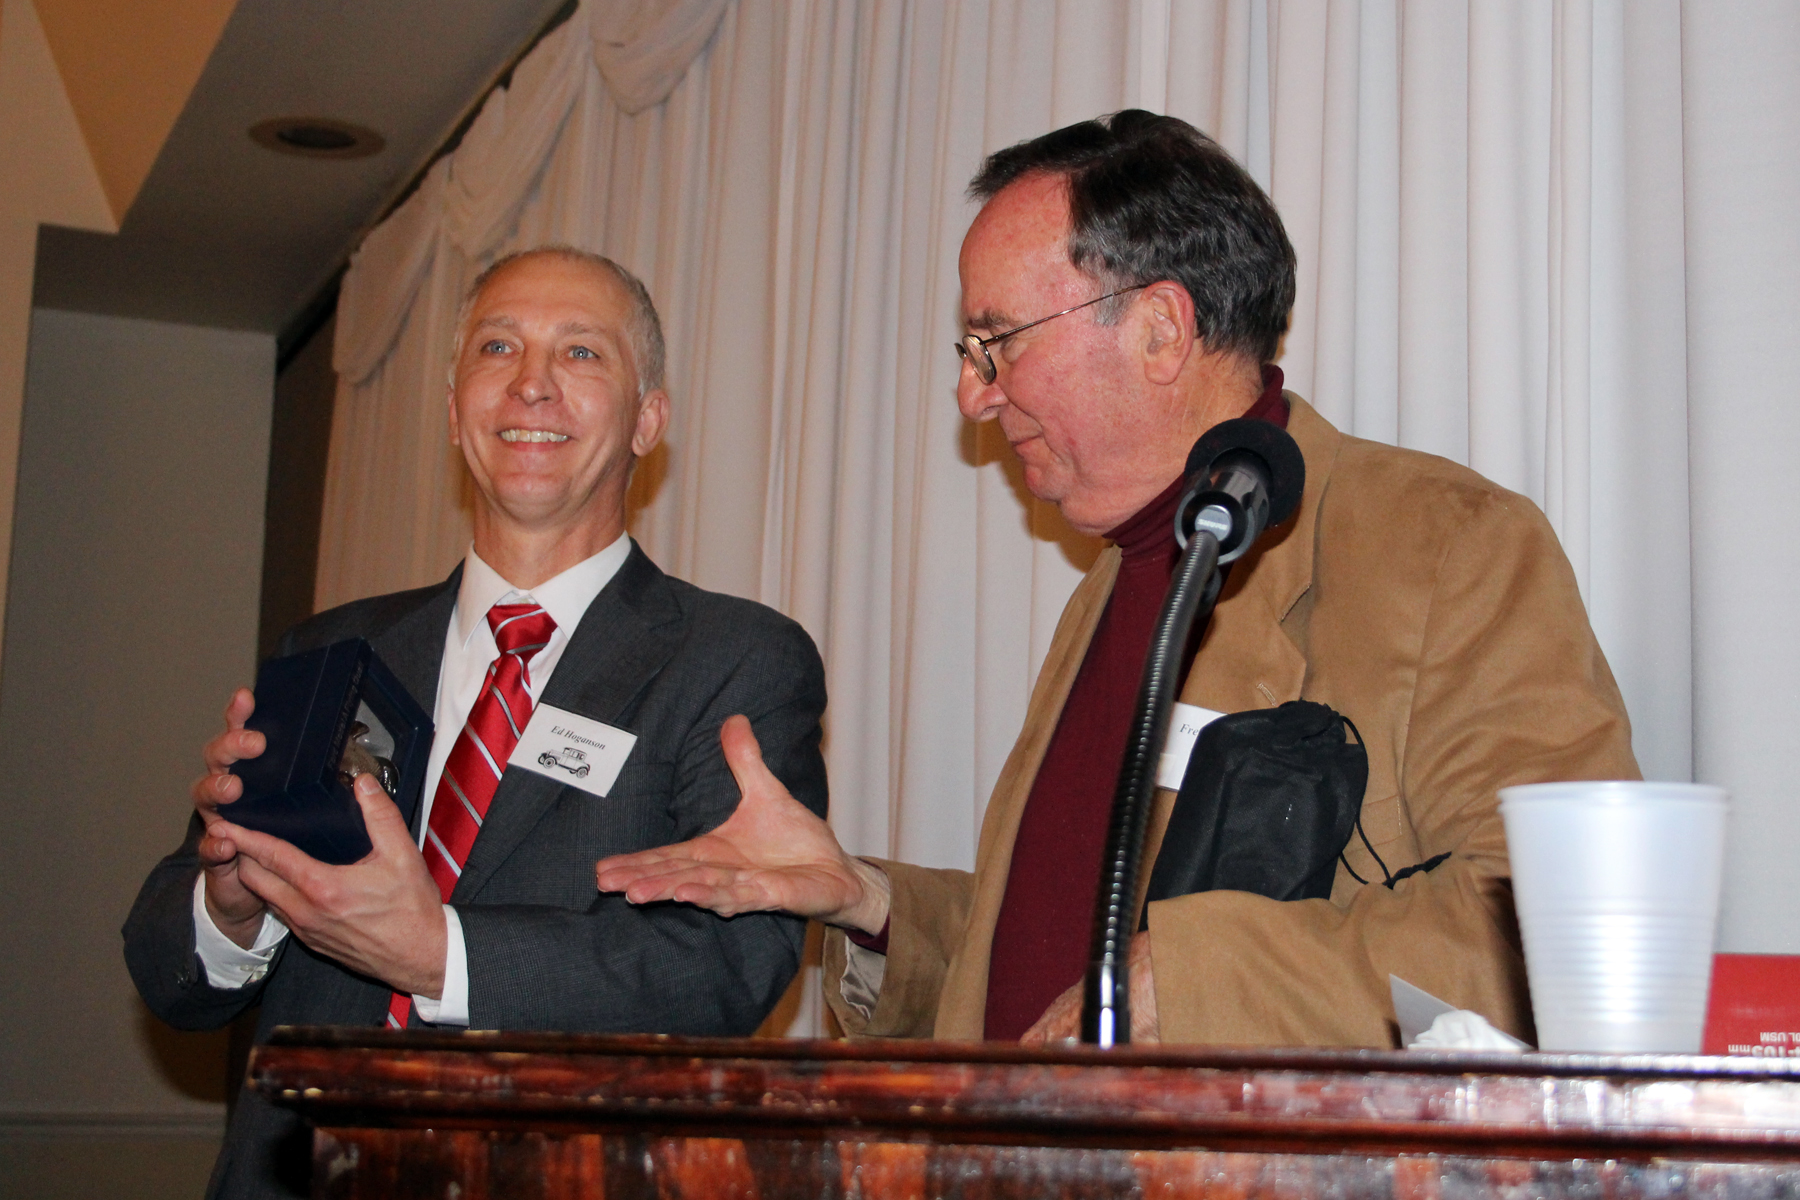 Outgoing President Ed Hoganson with incoming President Fred Burk